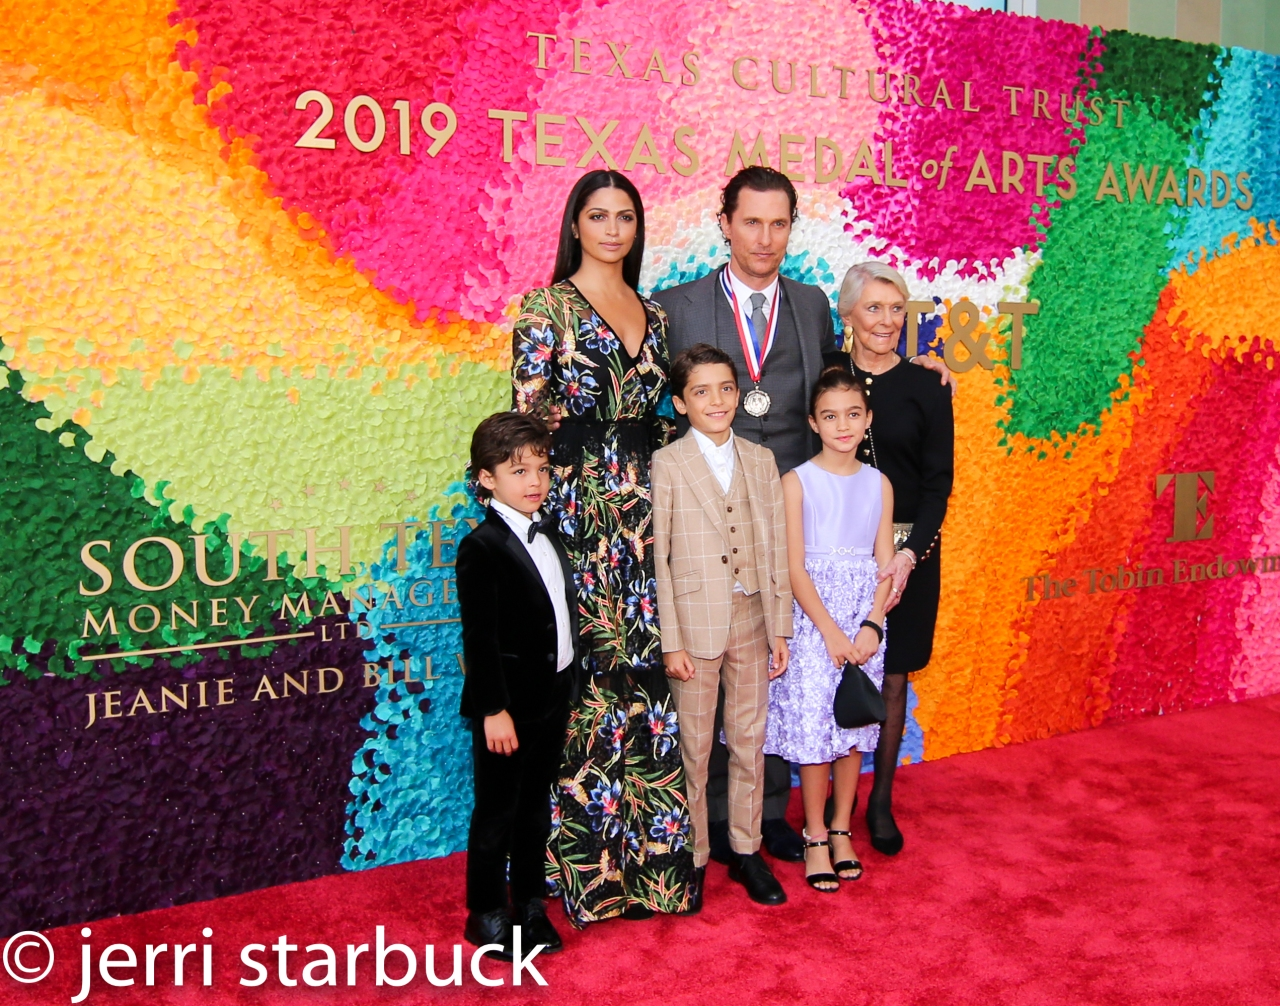 The 2019 Texas Medal of Arts Awards Red CarpetPhotos